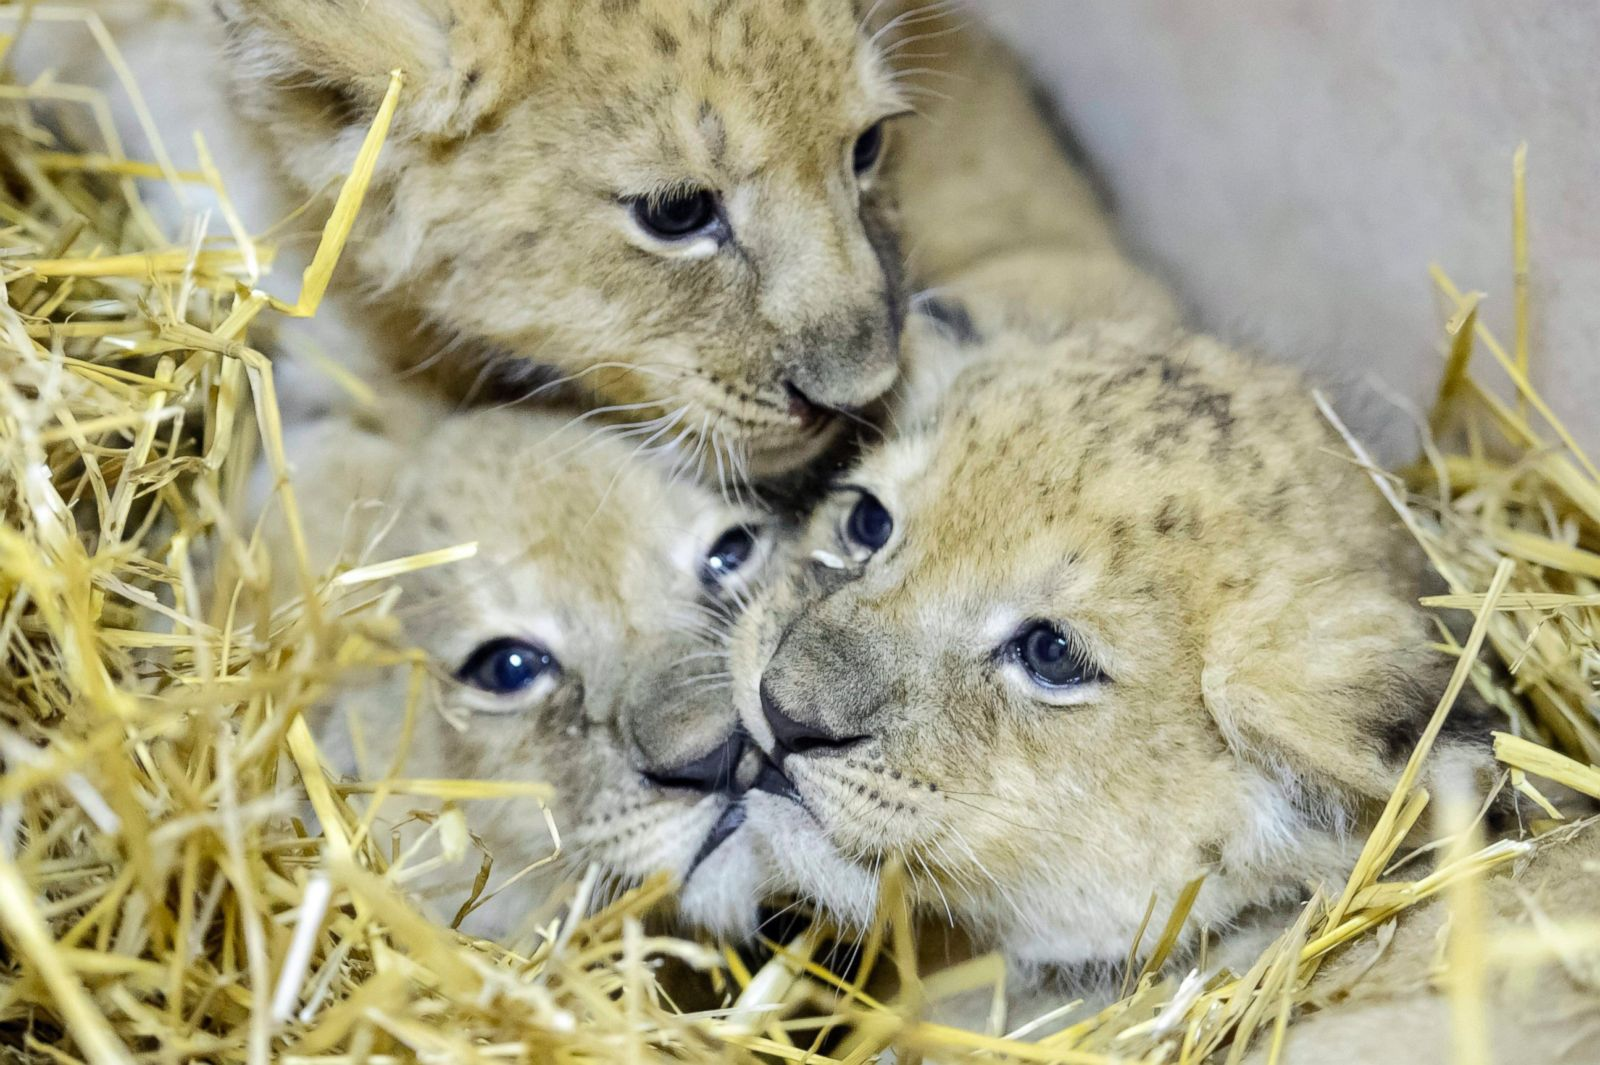 Cutest lion in the world - photo#33